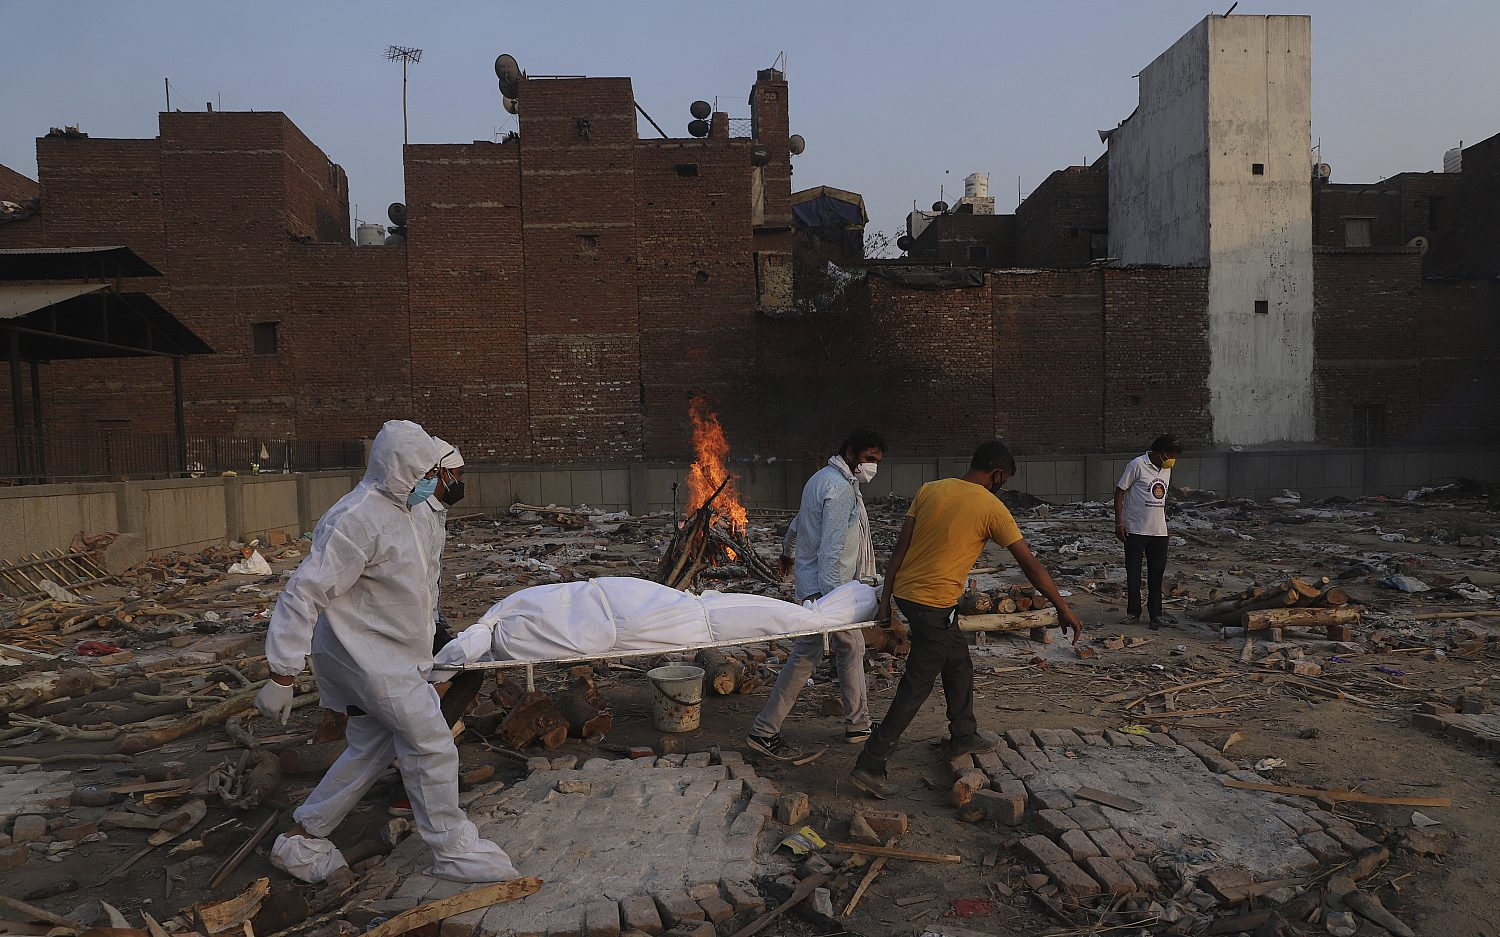 Study: Indian pandemic deaths vastly underreported